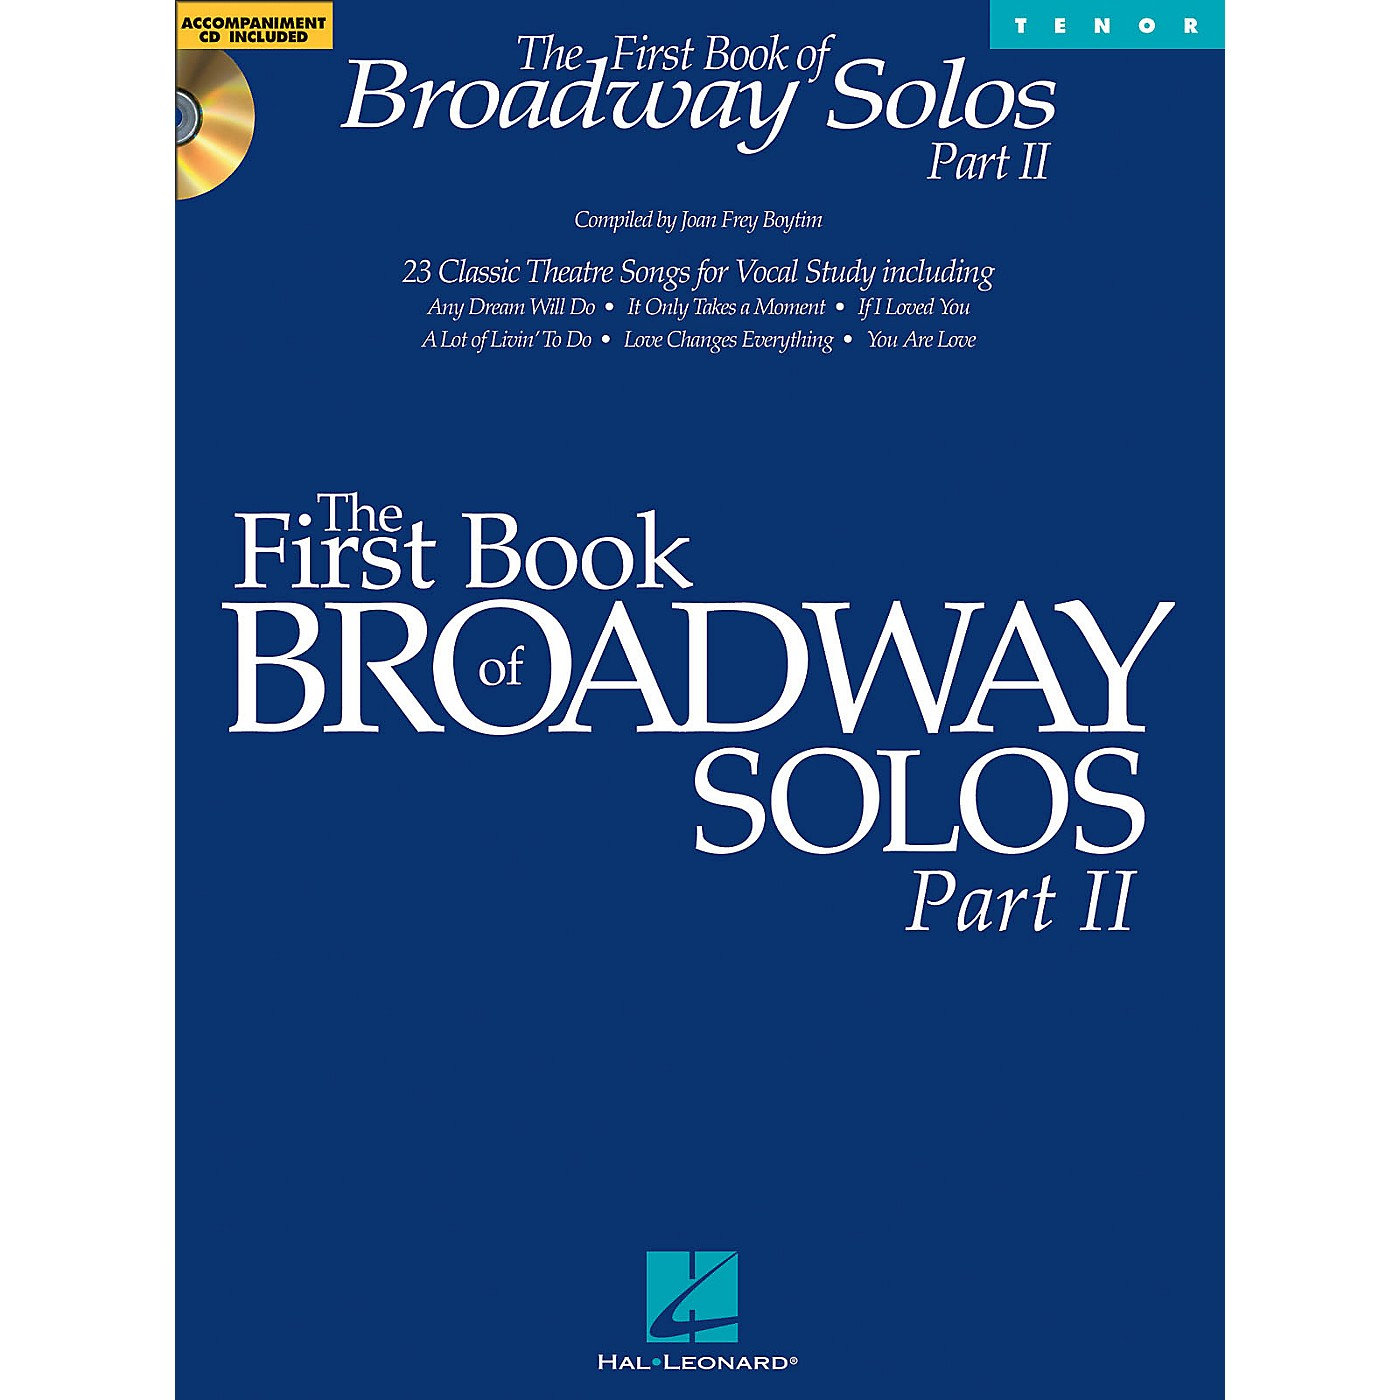 Hal Leonard First Book Of Broadway Solos Part II for Tenor Voice Book/CD thumbnail